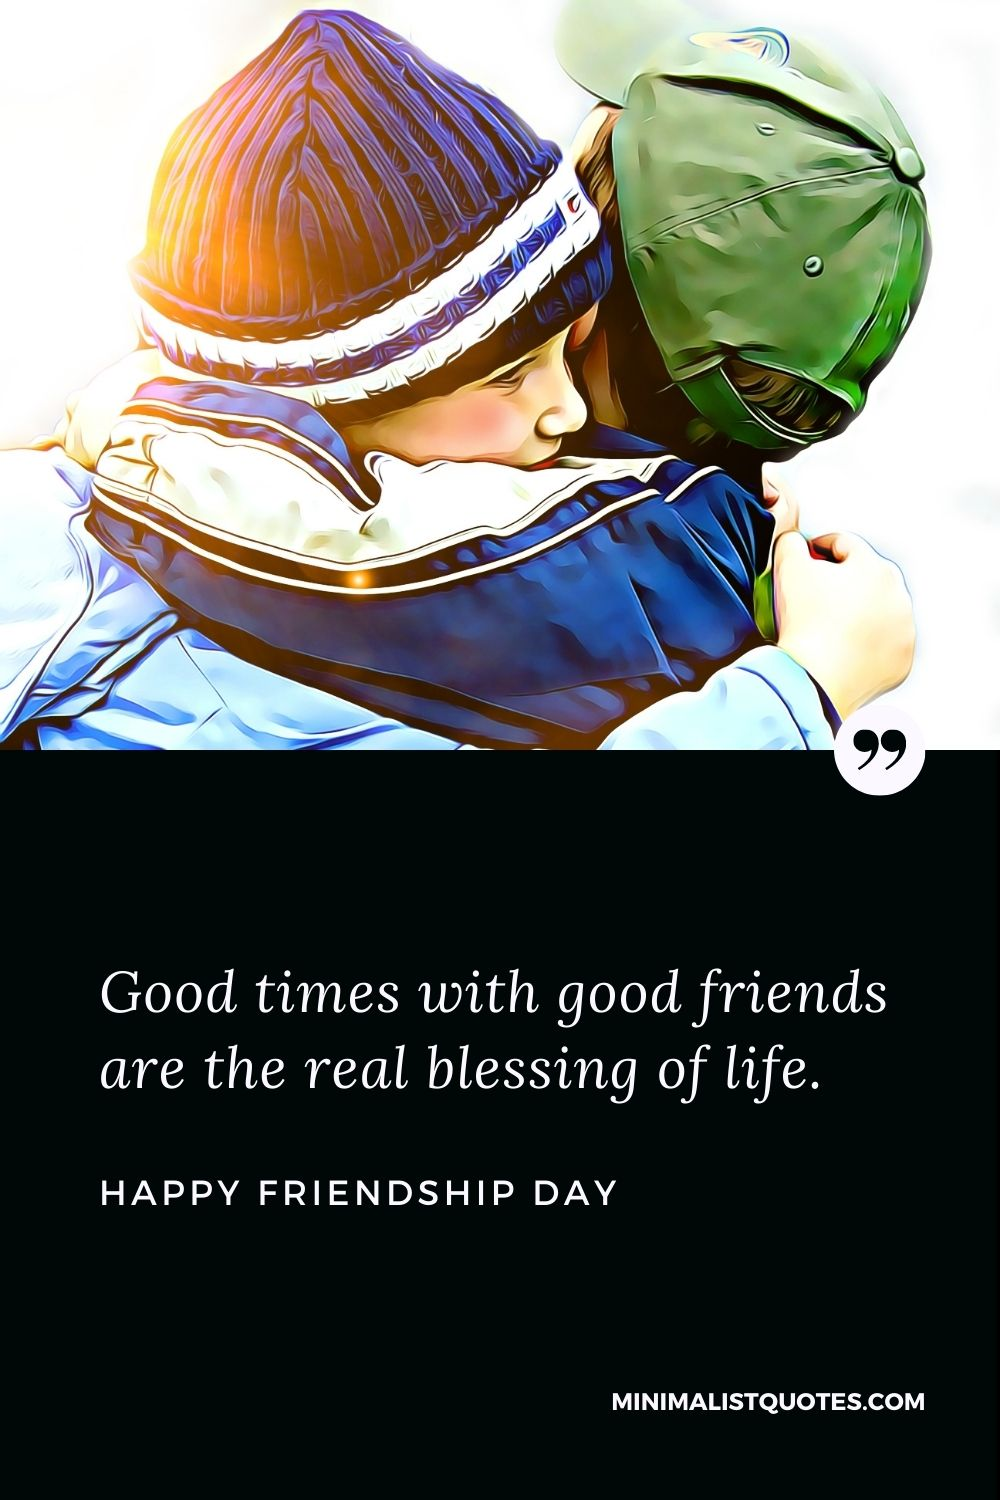 Happy Friendship Day Wishes - Good times with good friends are the real blessing of life.